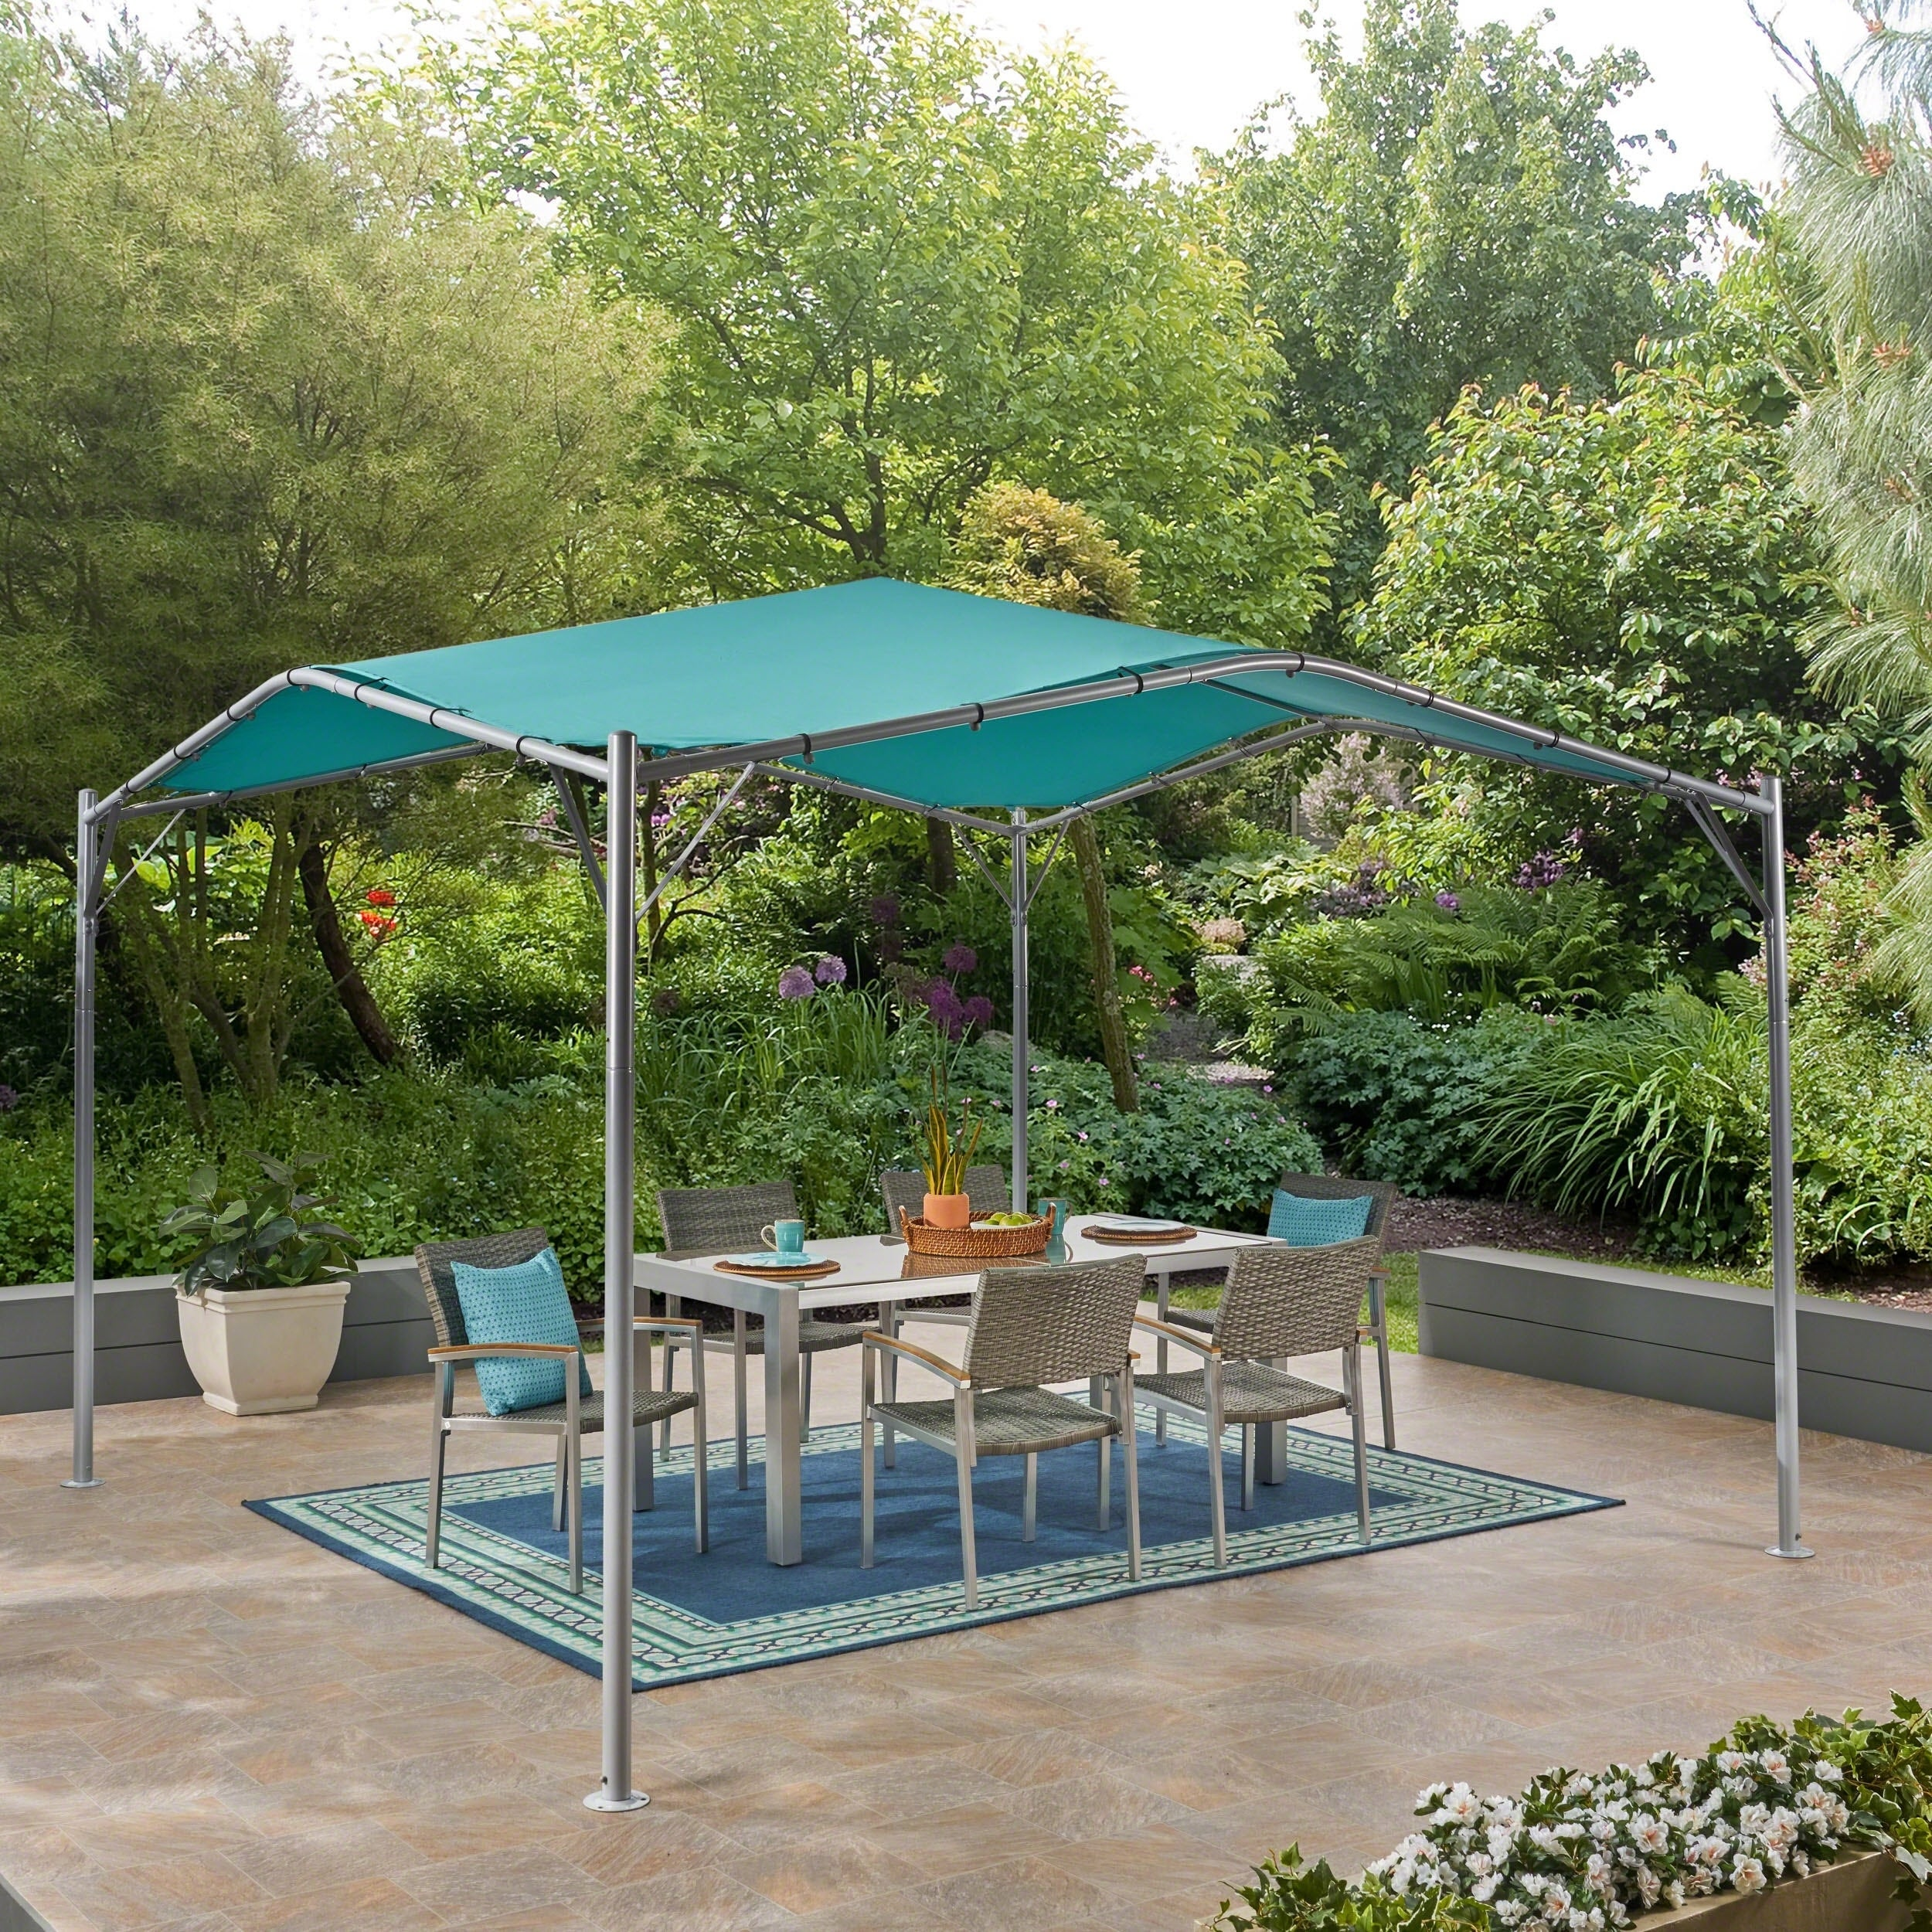 Poppy Aluminum Gazebo Canopy Lightweight Water Resistant Fabric Teal And Silver Perfect For Patio By Christopher Knight Home